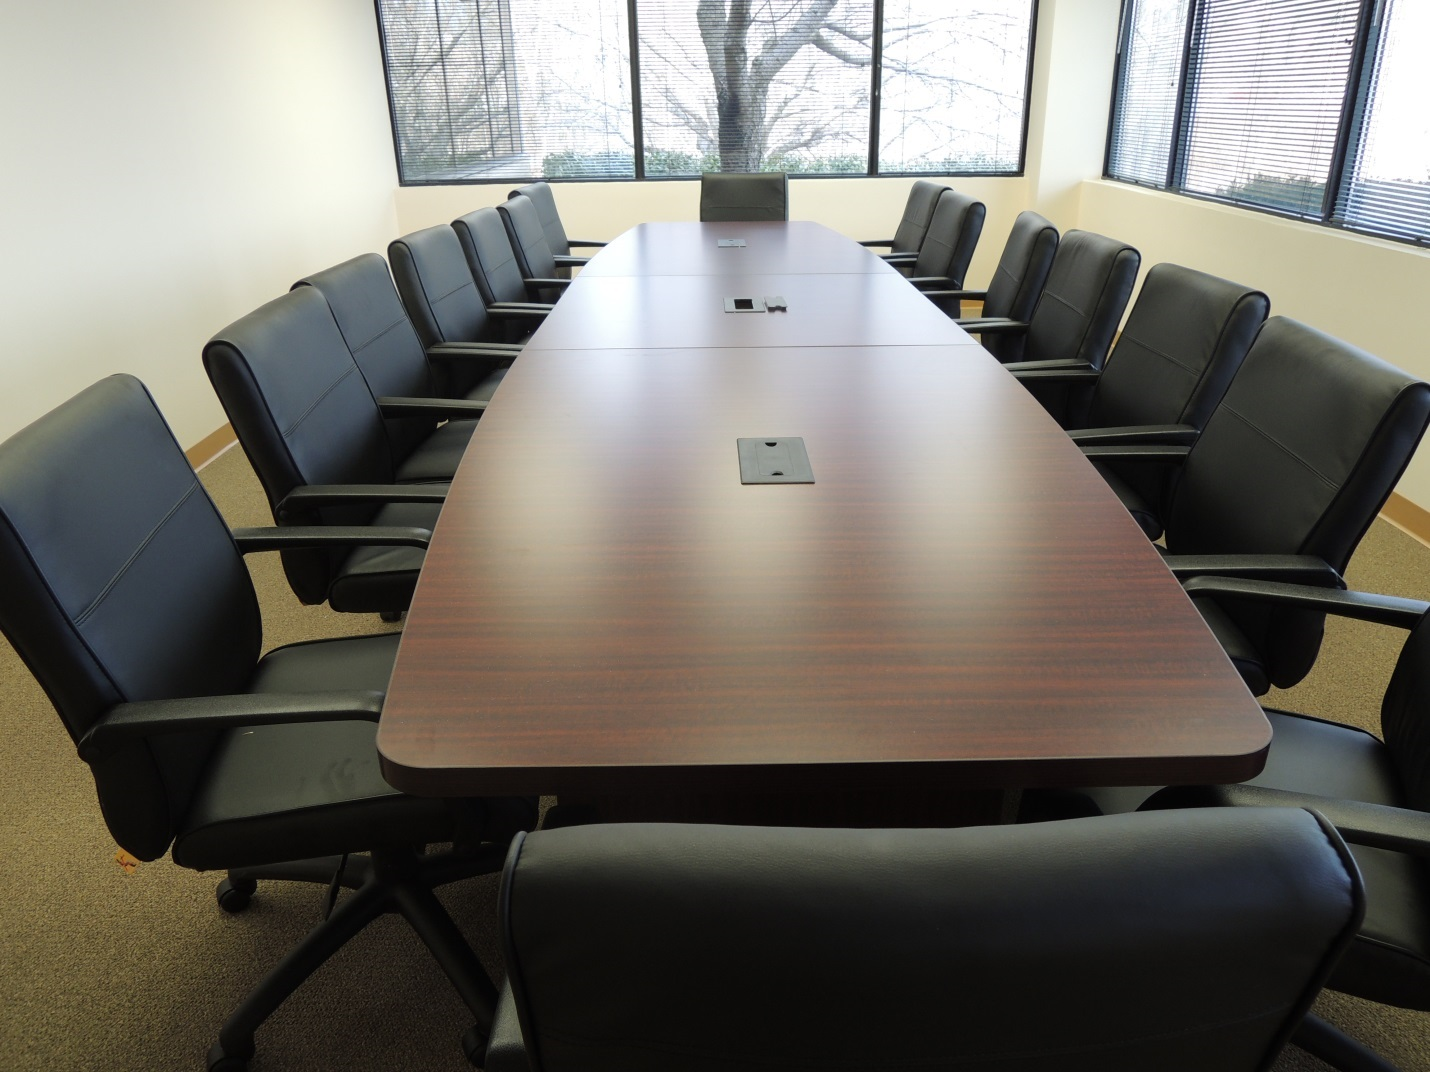 Remanufactured Haworth Workstations Woodlawn MD ReForm - Haworth conference table